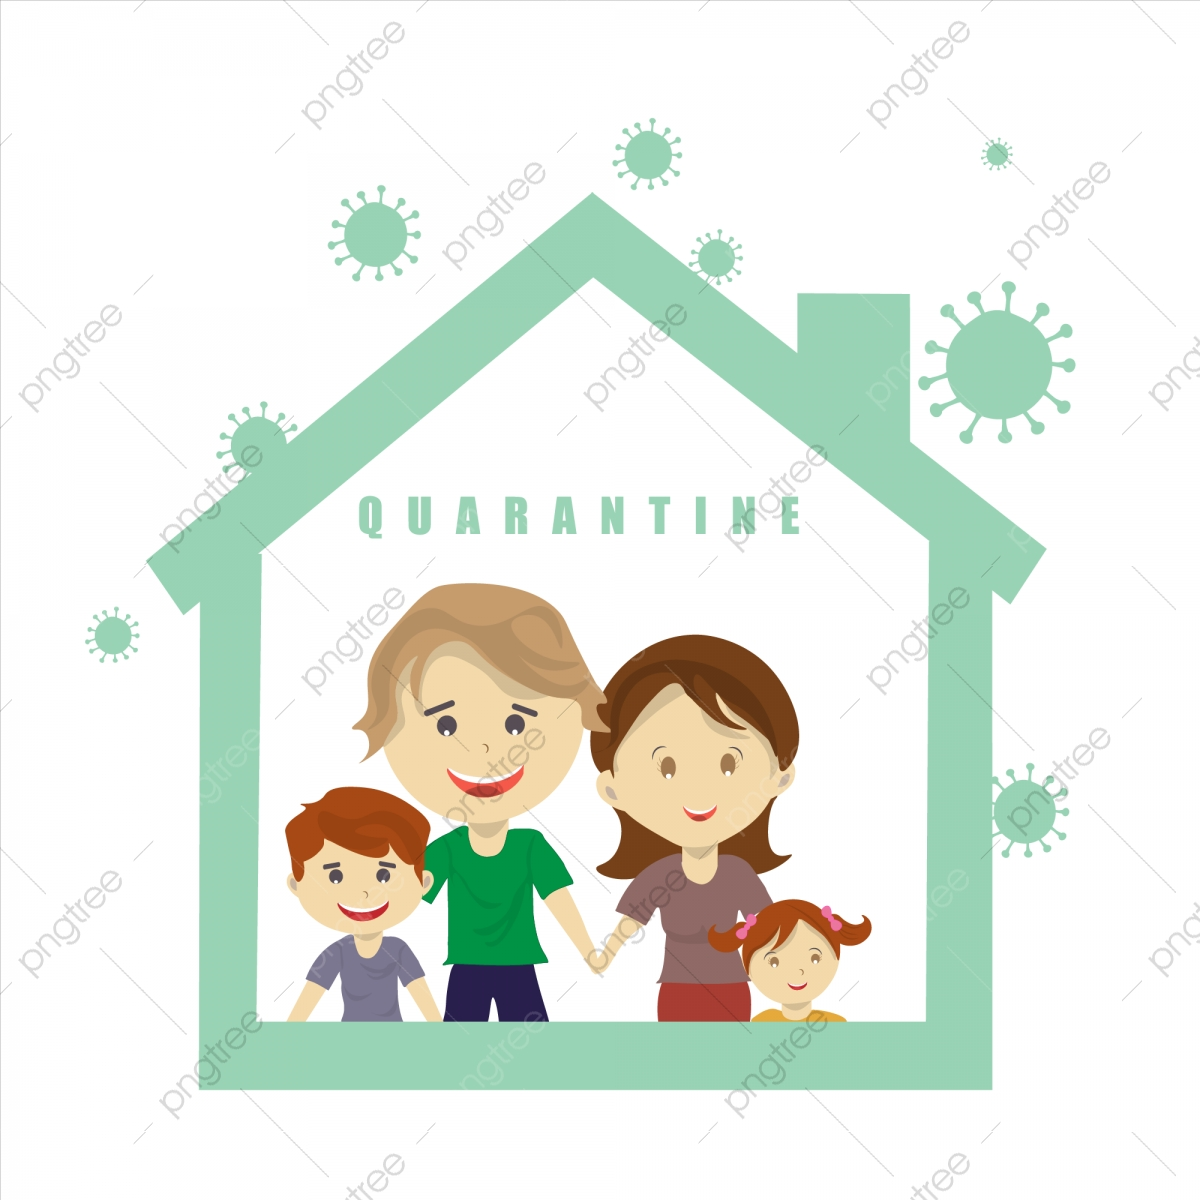 Child Protection - Playing Kids - Free Transparent PNG Clipart Images  Download